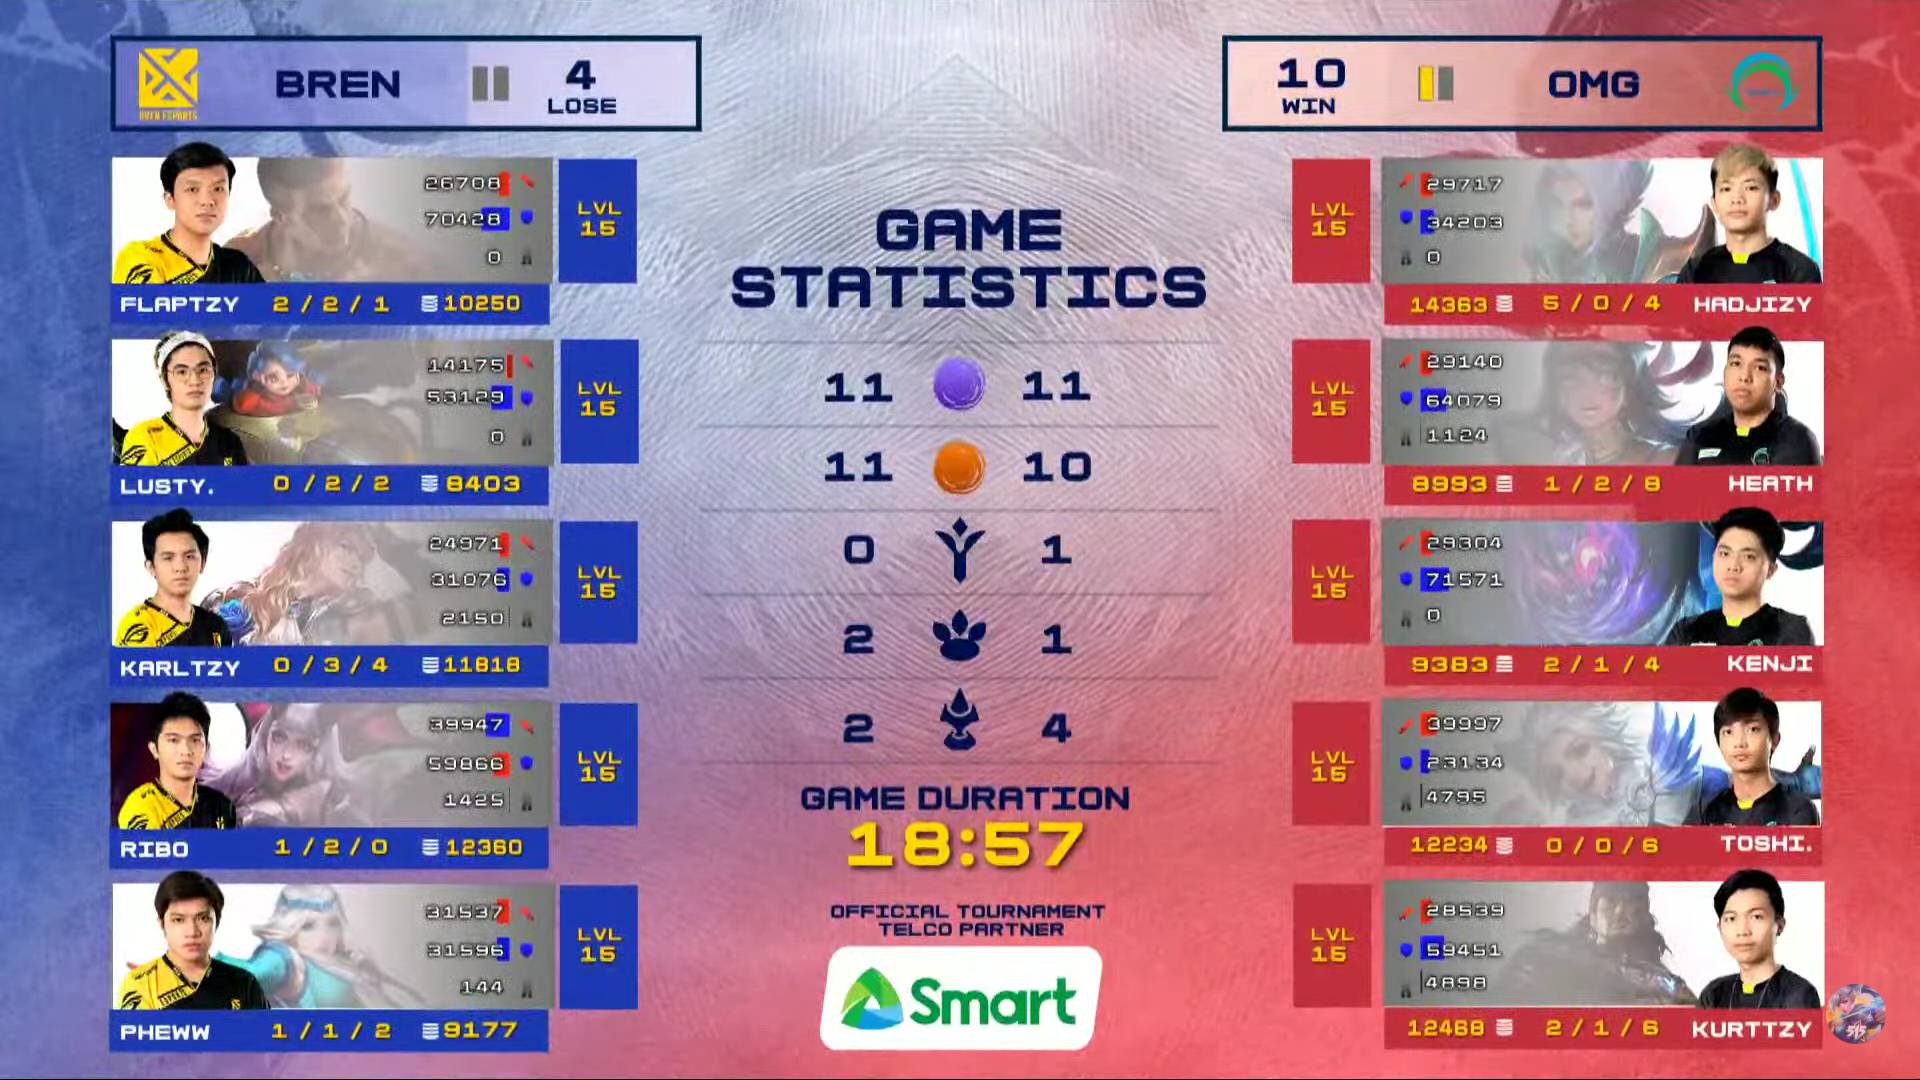 MPL-PH-Season-7-Bren-def-Omega-Game-1 Bren commits to KarlTzy's Claude, outlasts SMART Omega in MPL PH Finals rematch ESports Mobile Legends MPL-PH News  - philippine sports news